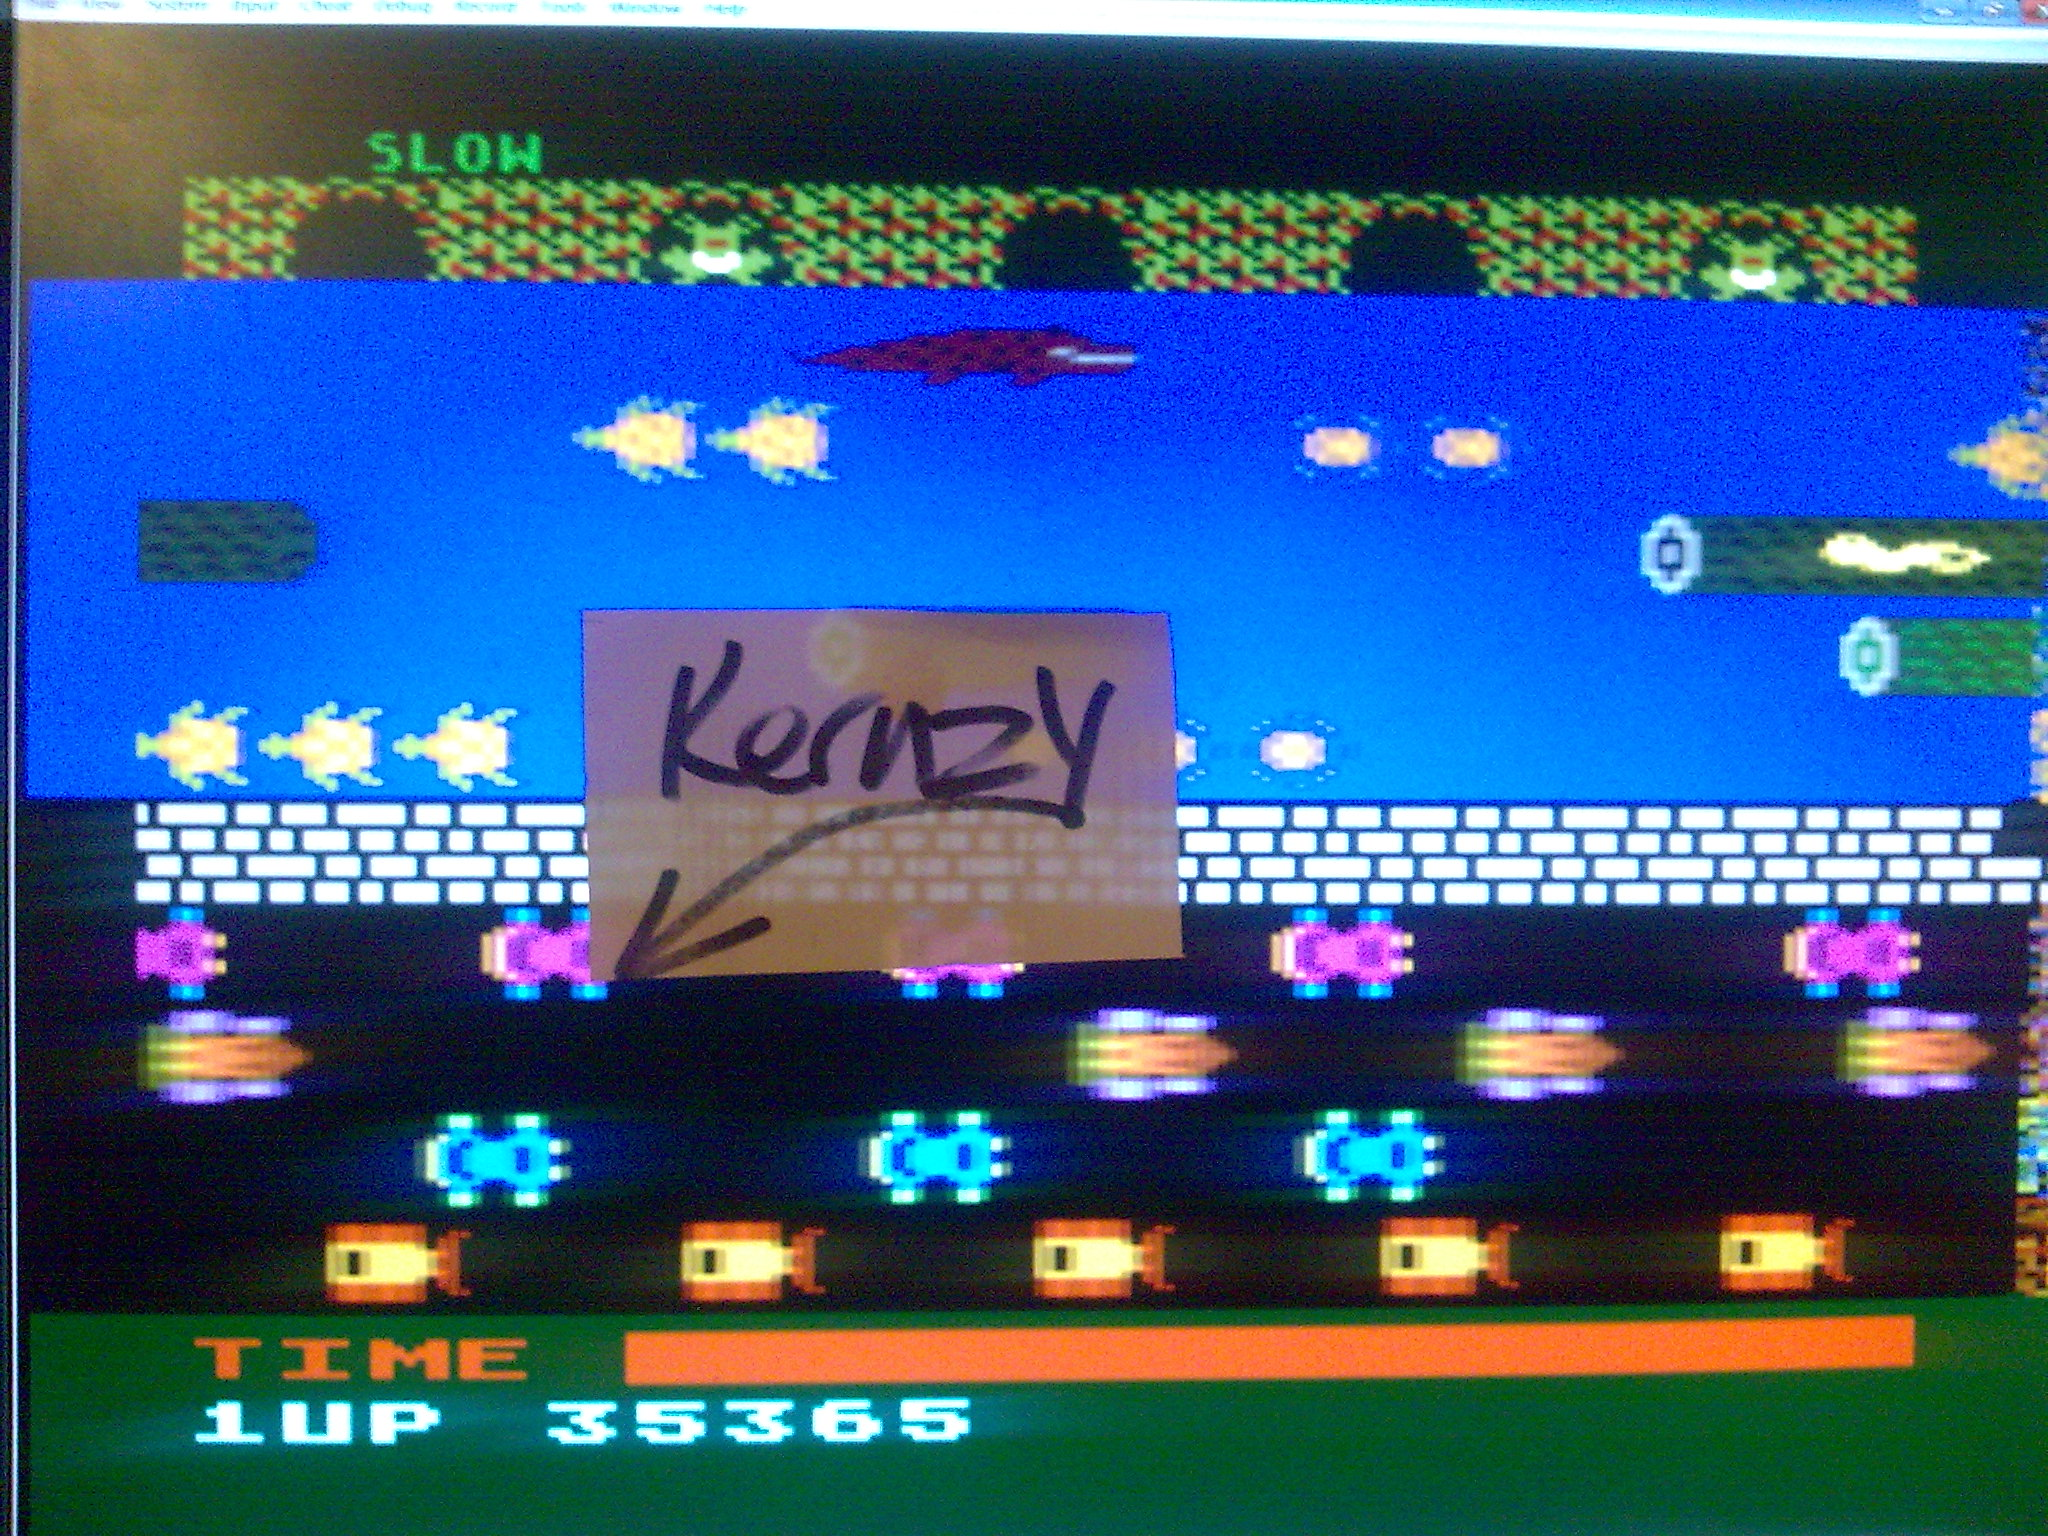 kernzy: Frogger: Slow [Parker Brothers] (Atari 400/800/XL/XE Emulated) 35,365 points on 2014-10-17 20:57:02